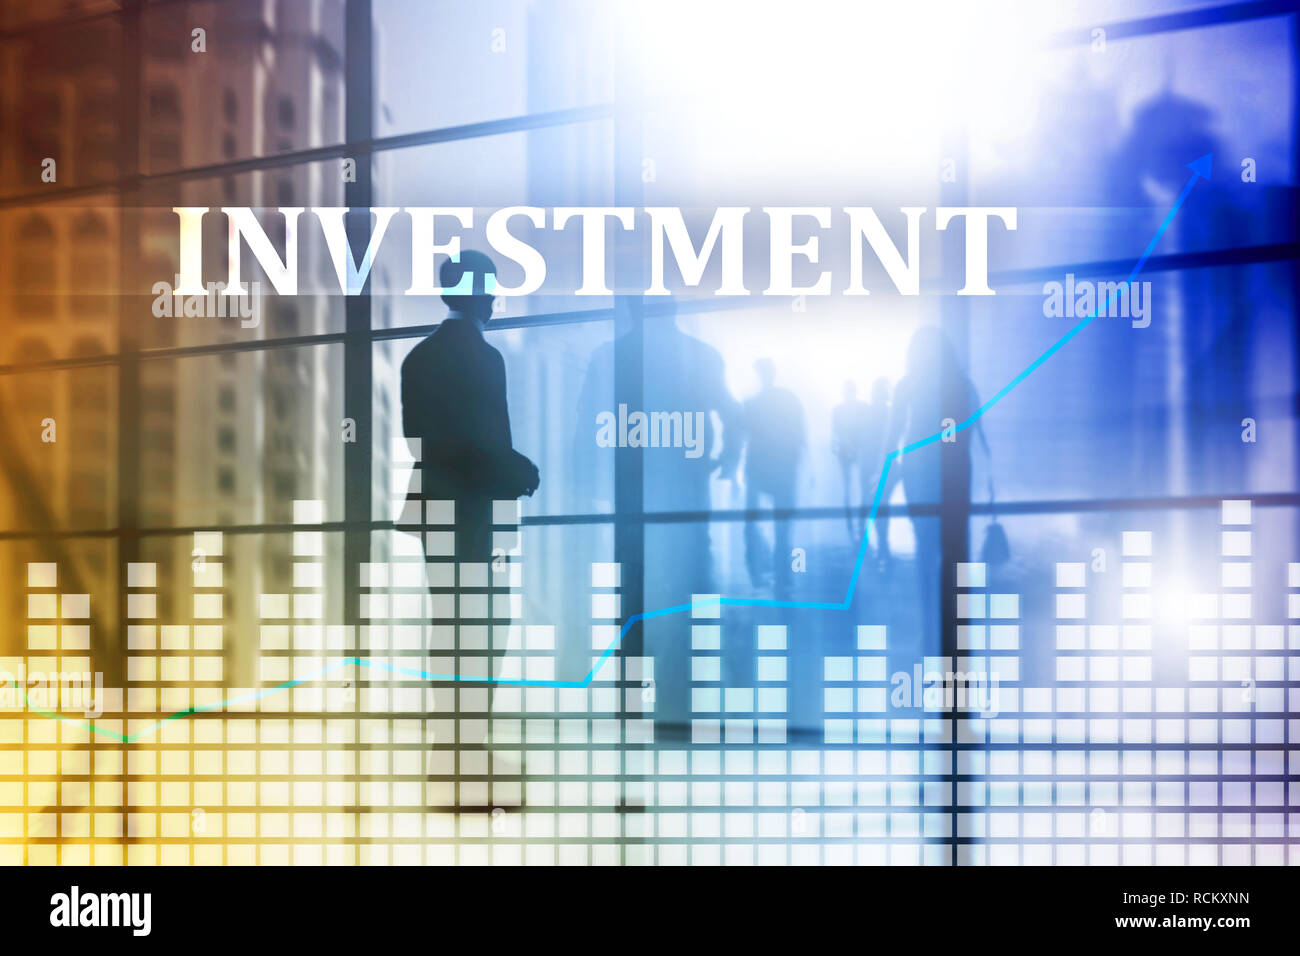 Investment, ROI, financial market concept. Business background - Stock Image